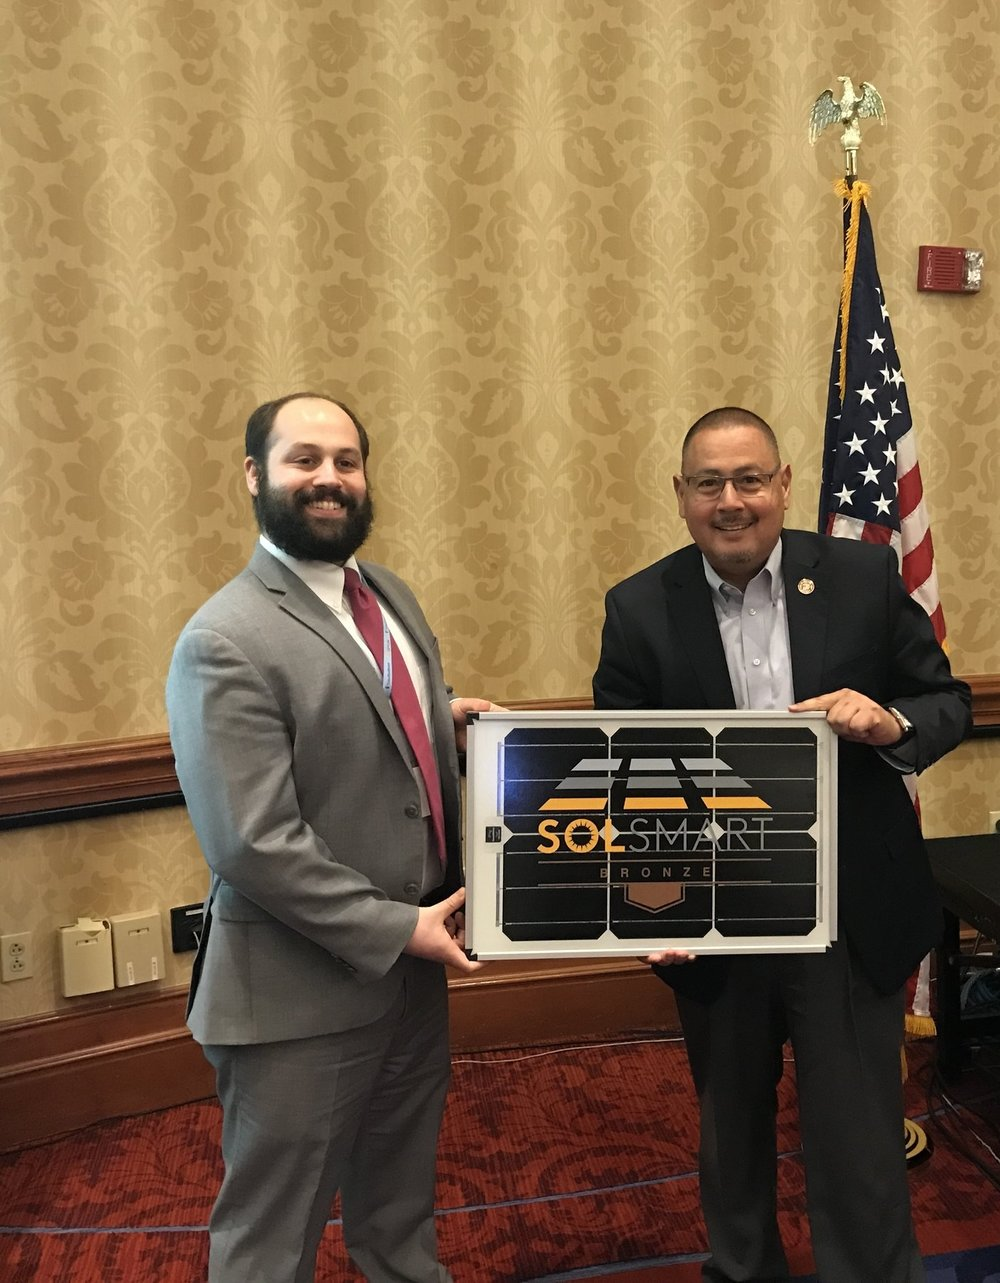 SolSmart staff (left) presents Maricopa County, AZ Supervisor Steve Gallardo (right) with a Bronze SolSmart panel to commemorate the county's designation.